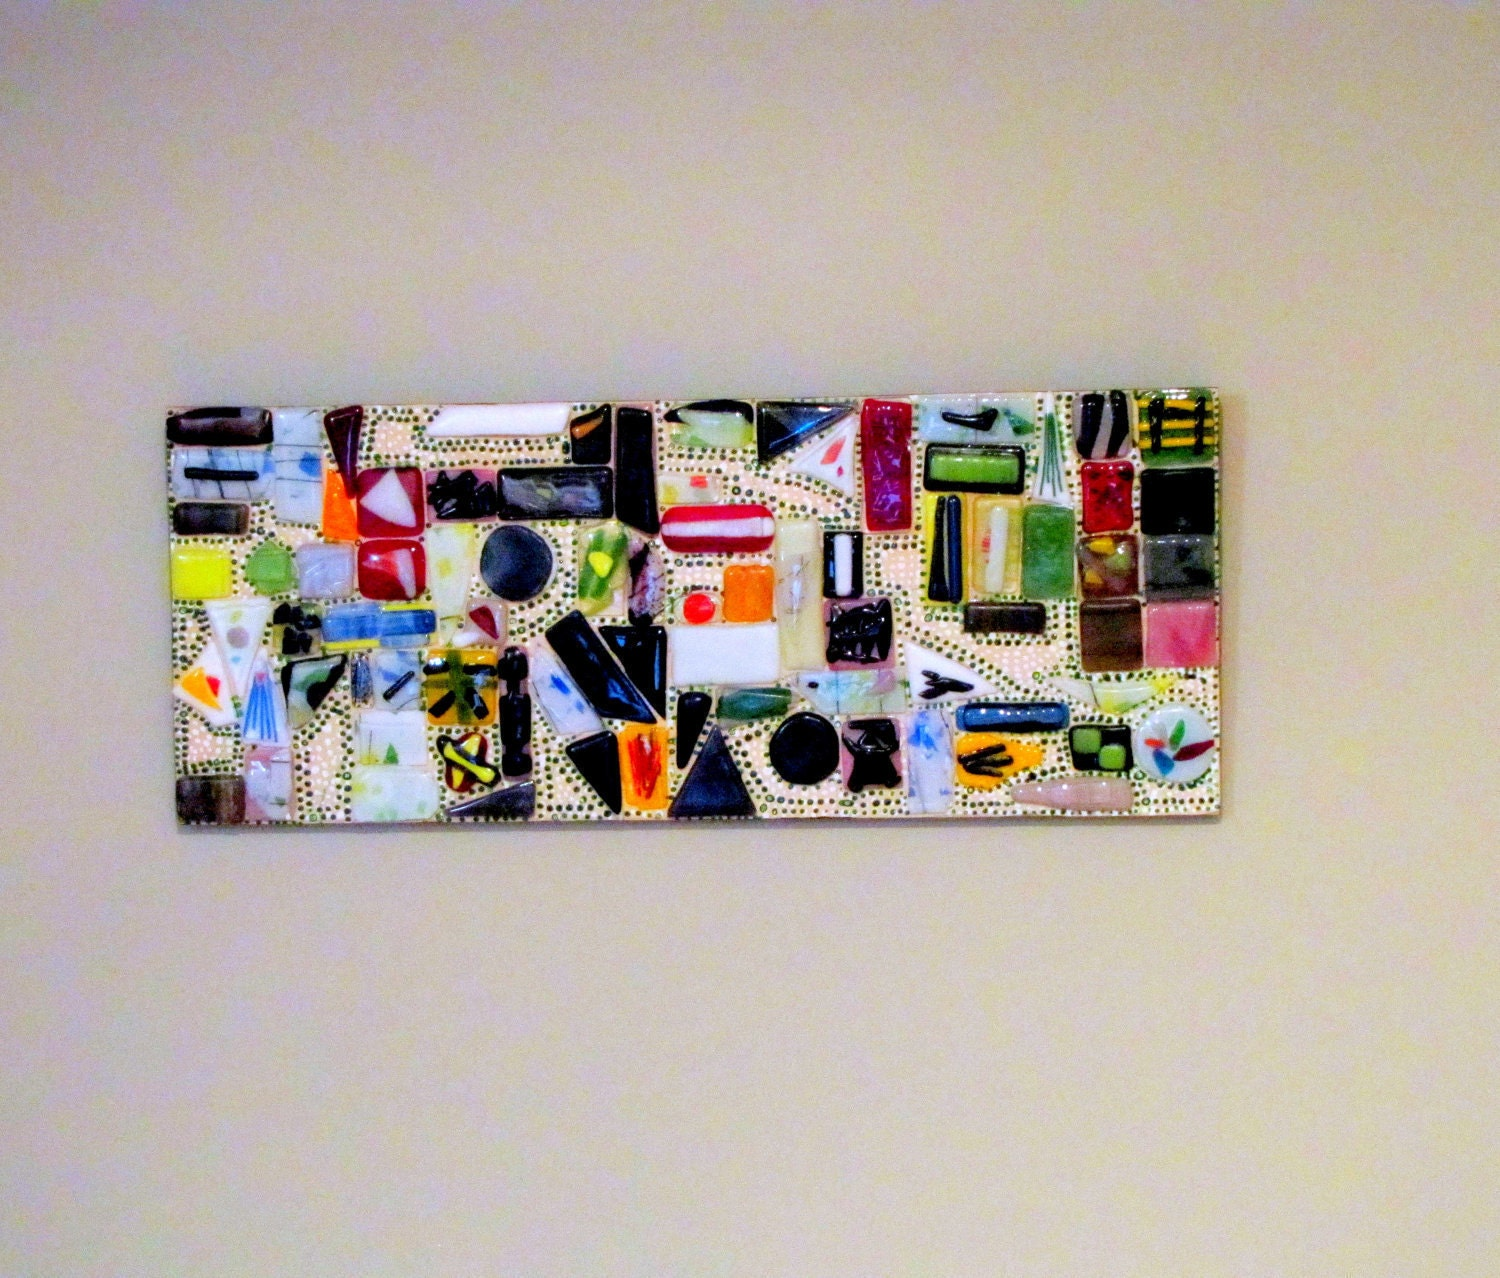 Fused Glass Wall Art: Original Contemporary Fused Glass Wall Art Hanging Signed